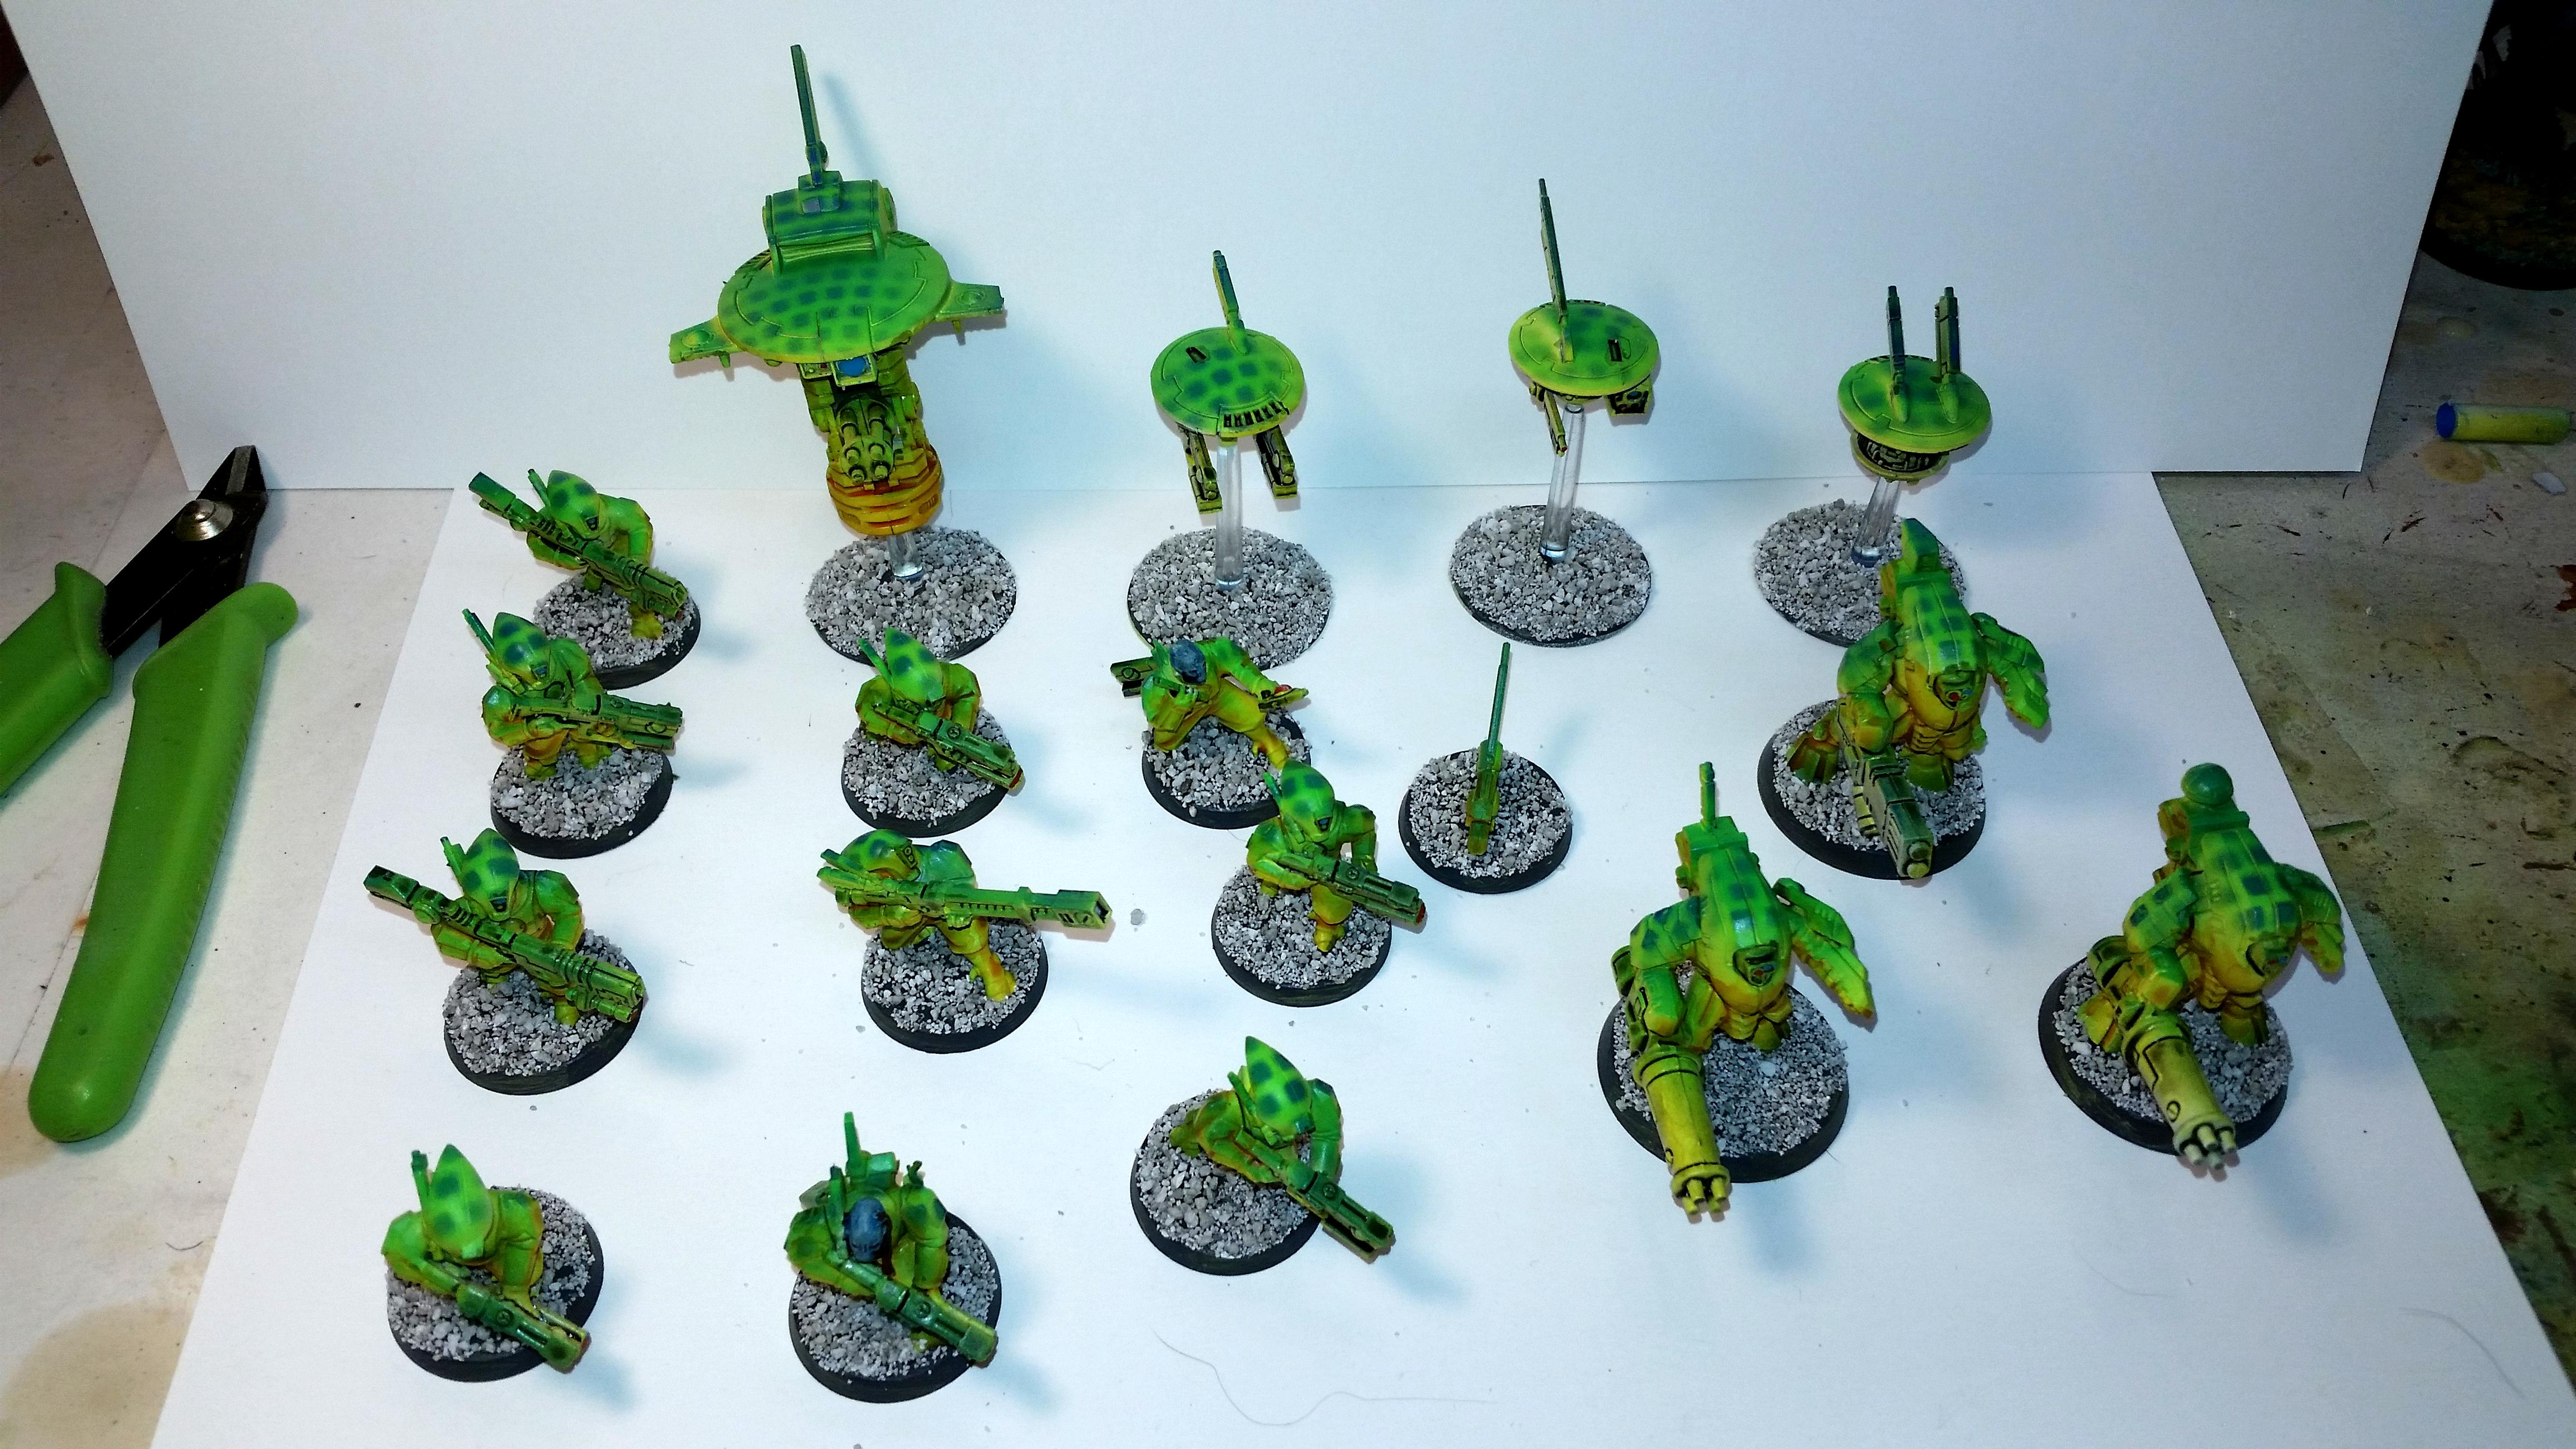 Tau, Poison frogs